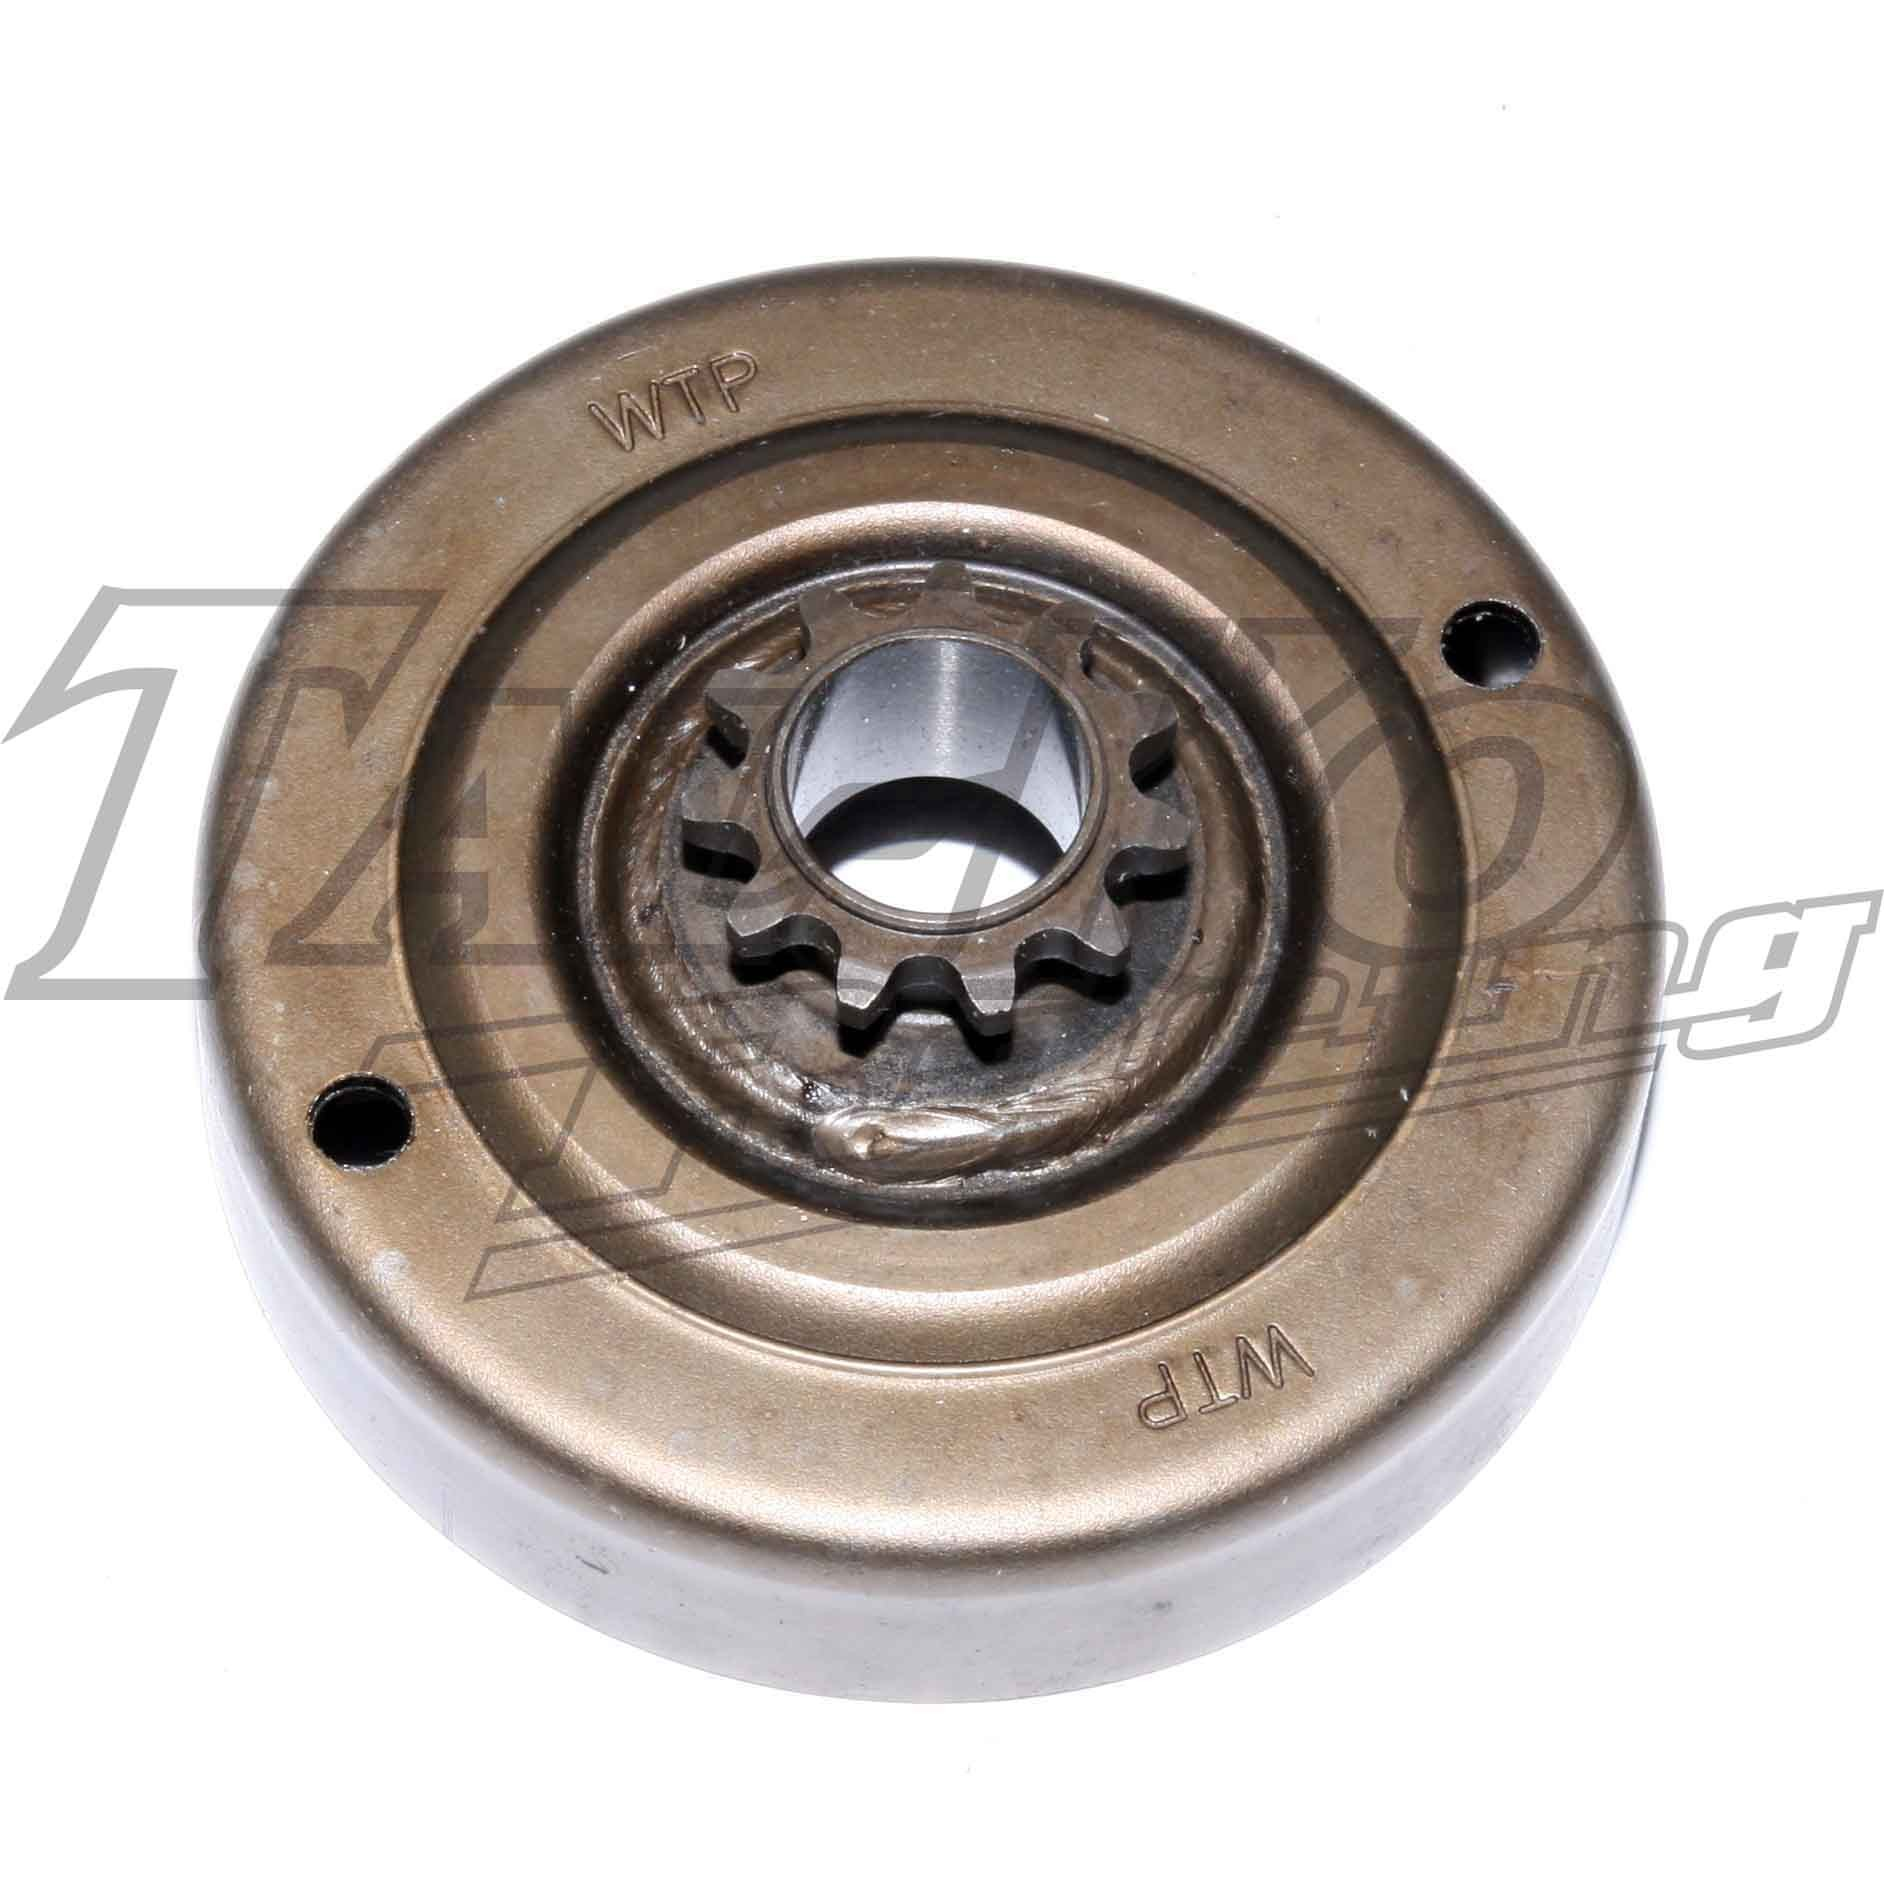 WTP60 CLUTCH DRUM 11T